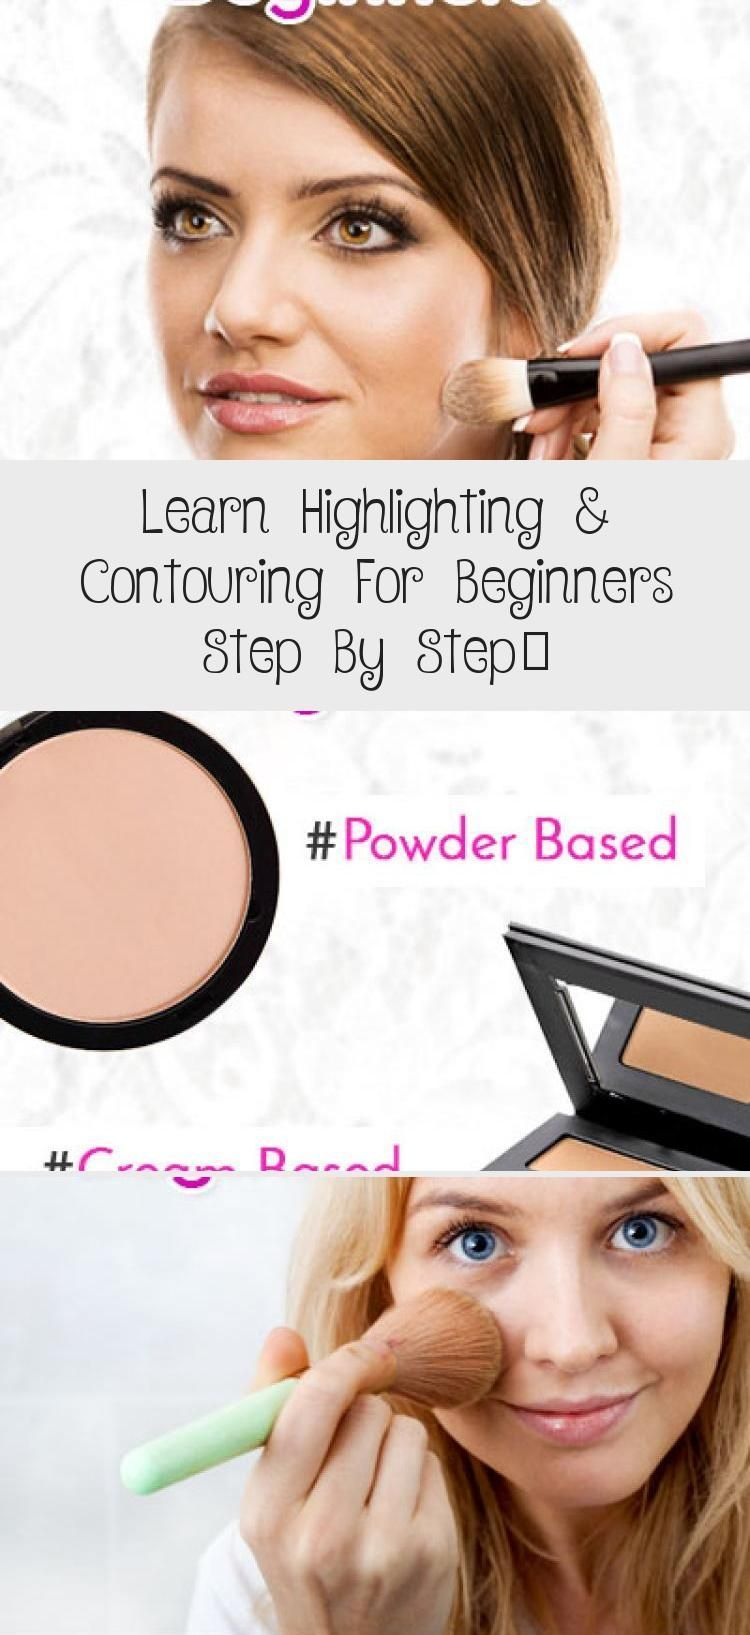 Highlighting,contouring for beginners